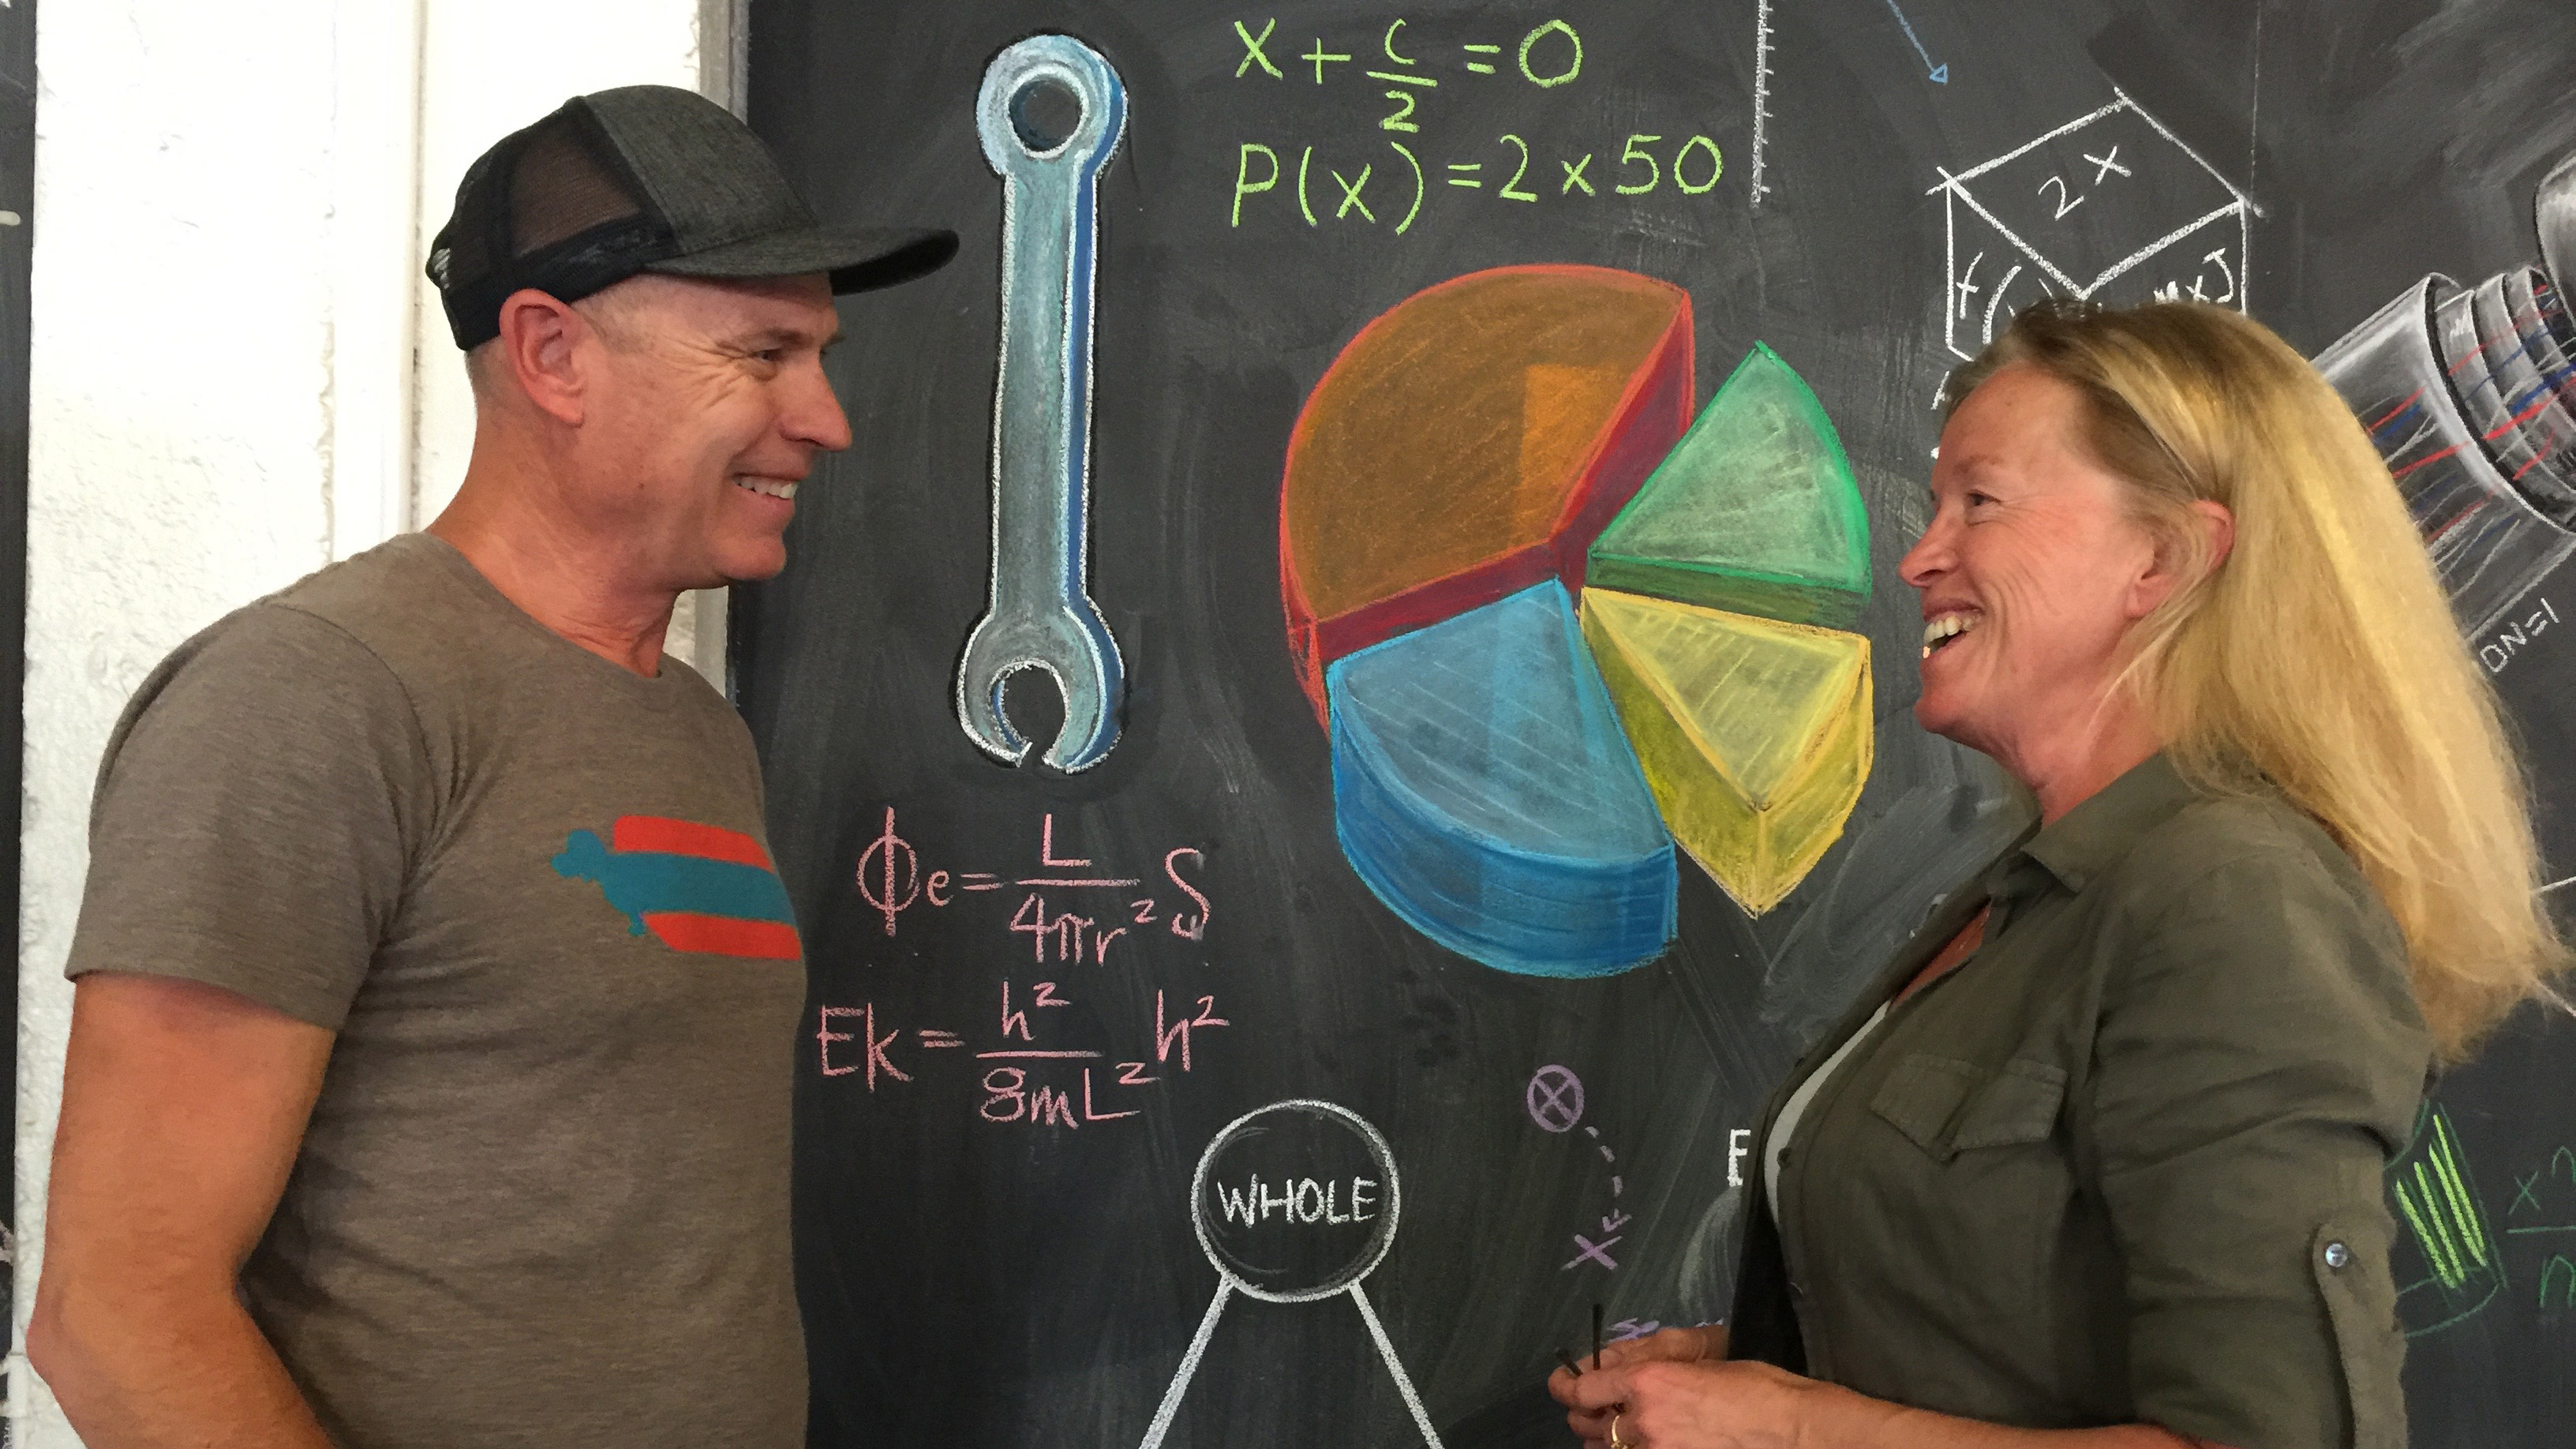 Explorers Tom and Tina Sjogren stand in front of a blackboard at a makers space.